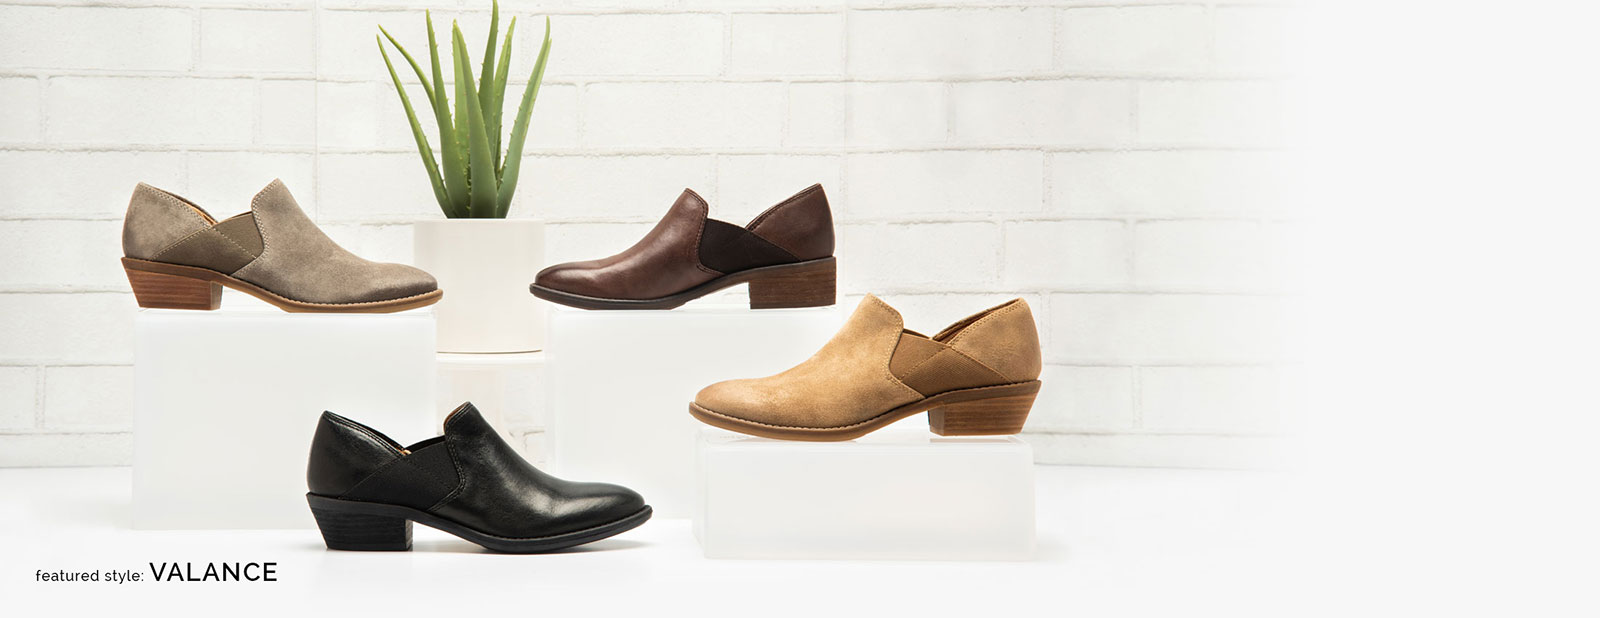 Featured style: Valance slip-on shoe, shown in black, tan, grey and brown